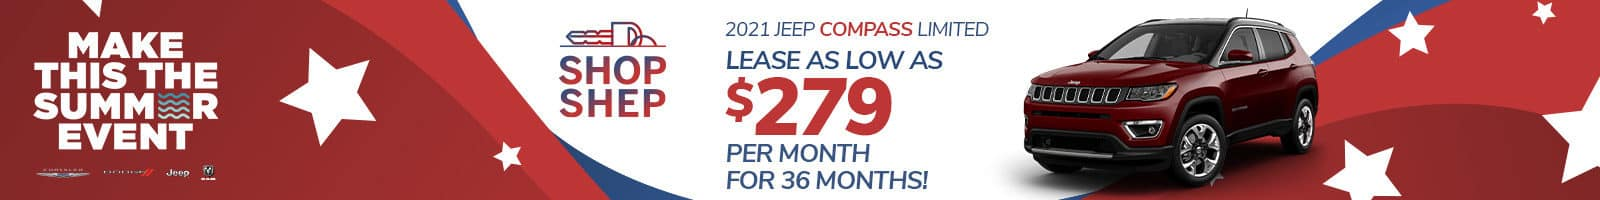 Best lease offer on a 2021 Compass near Fort Wayne IN